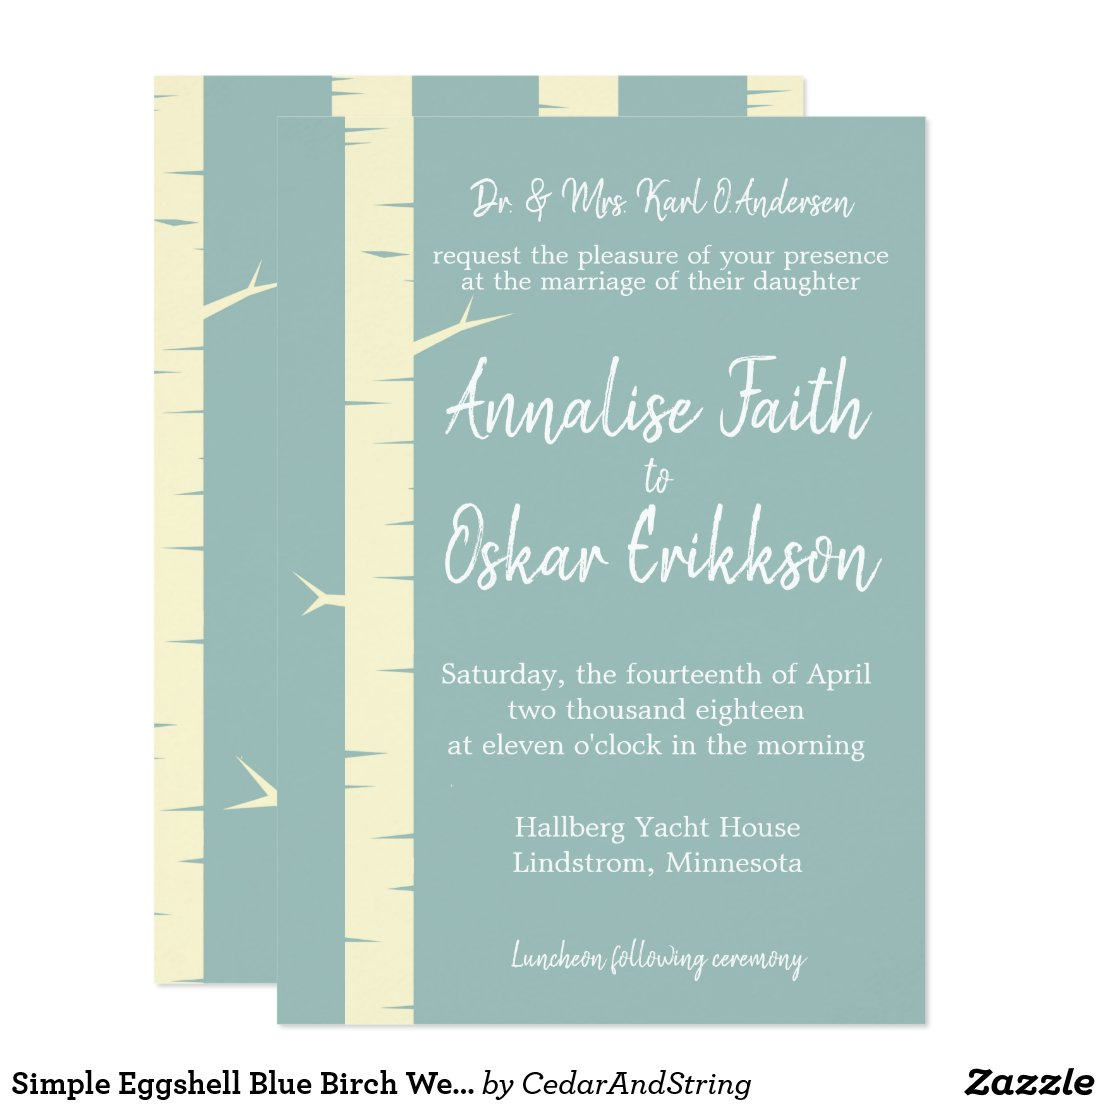 Simple Eggshell Blue Birch Wedding Invitation